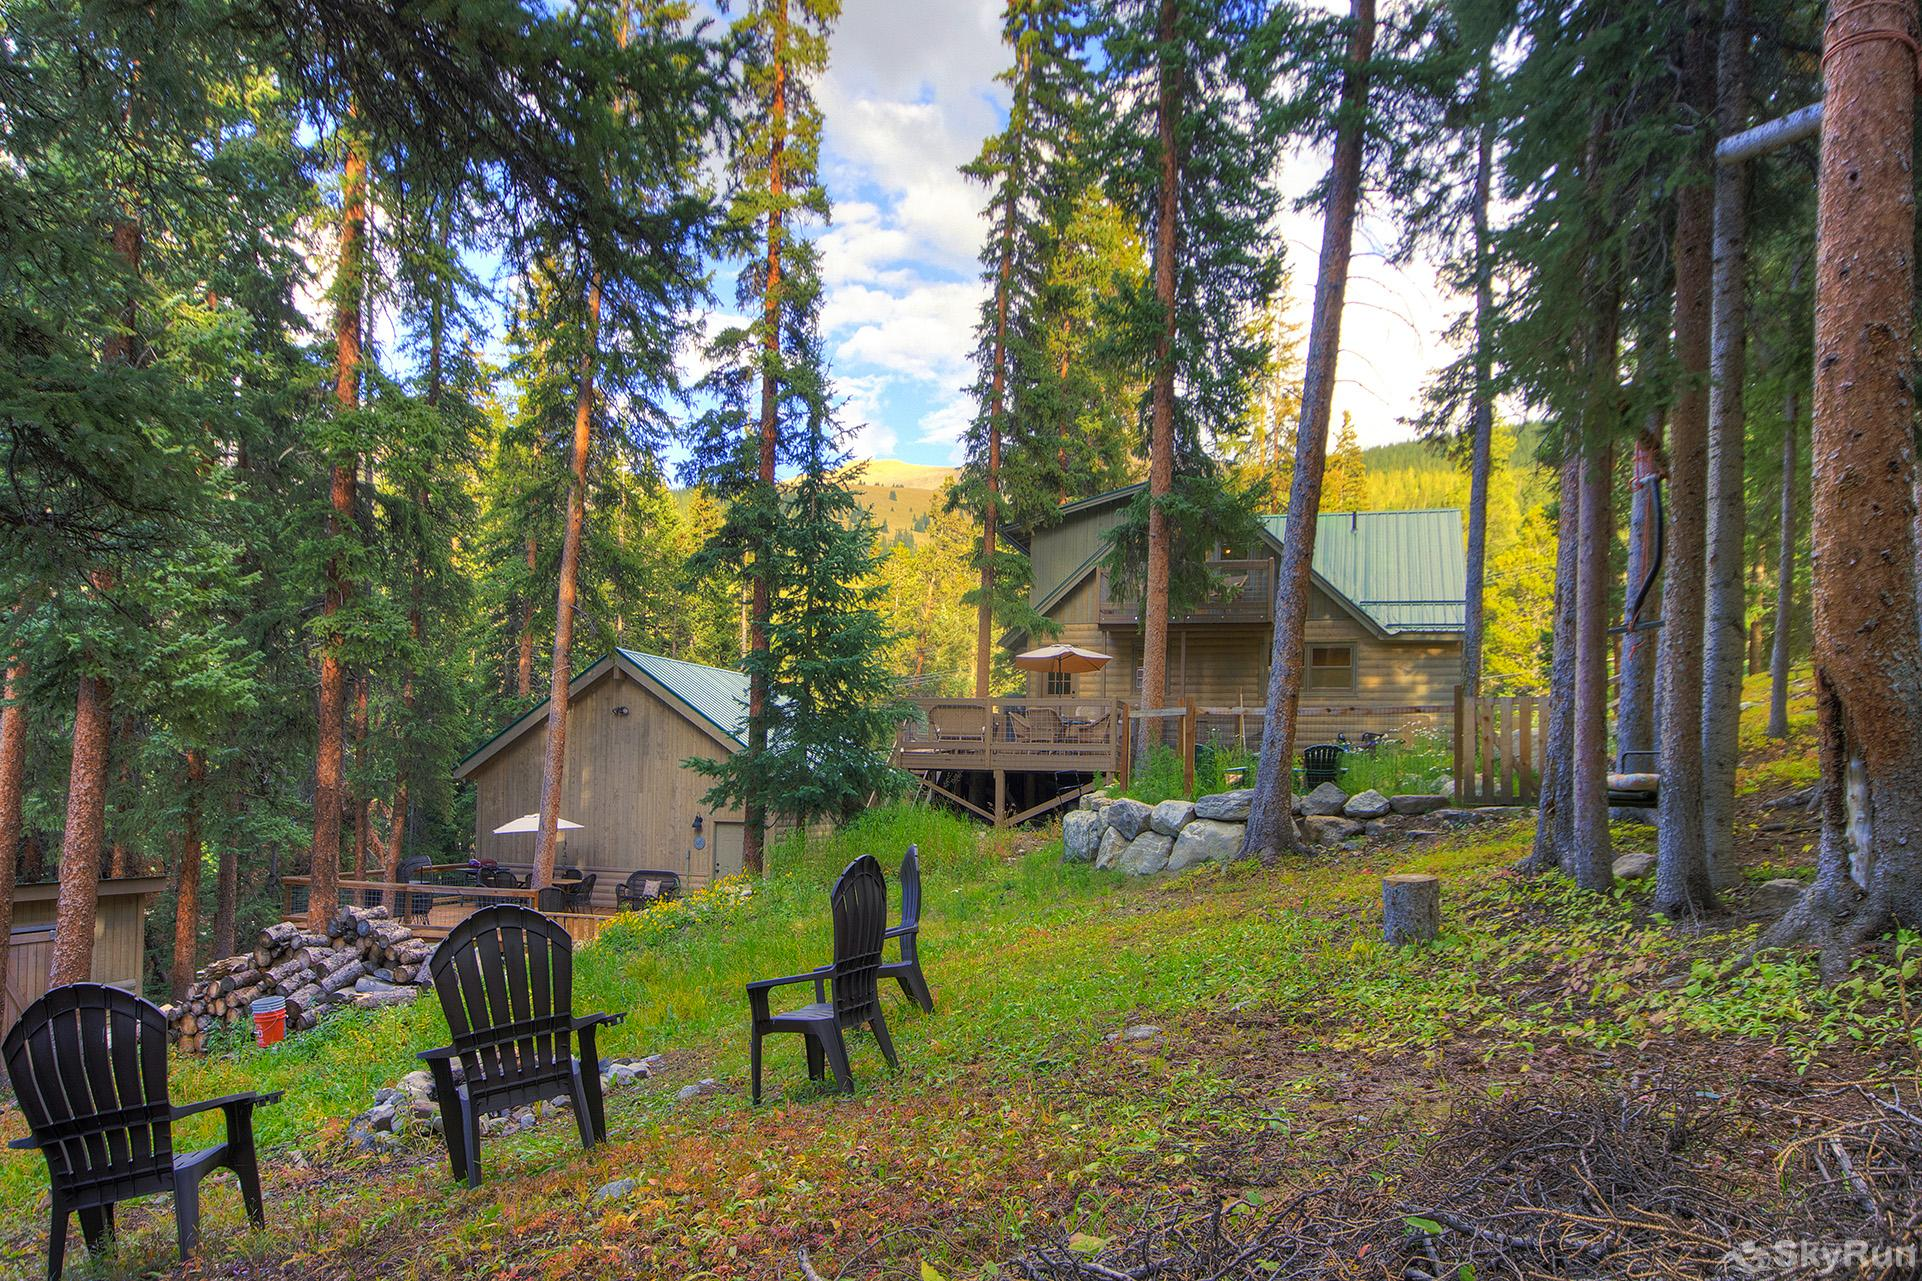 Black Bear Chalet Spacious backyard with wood fire pit